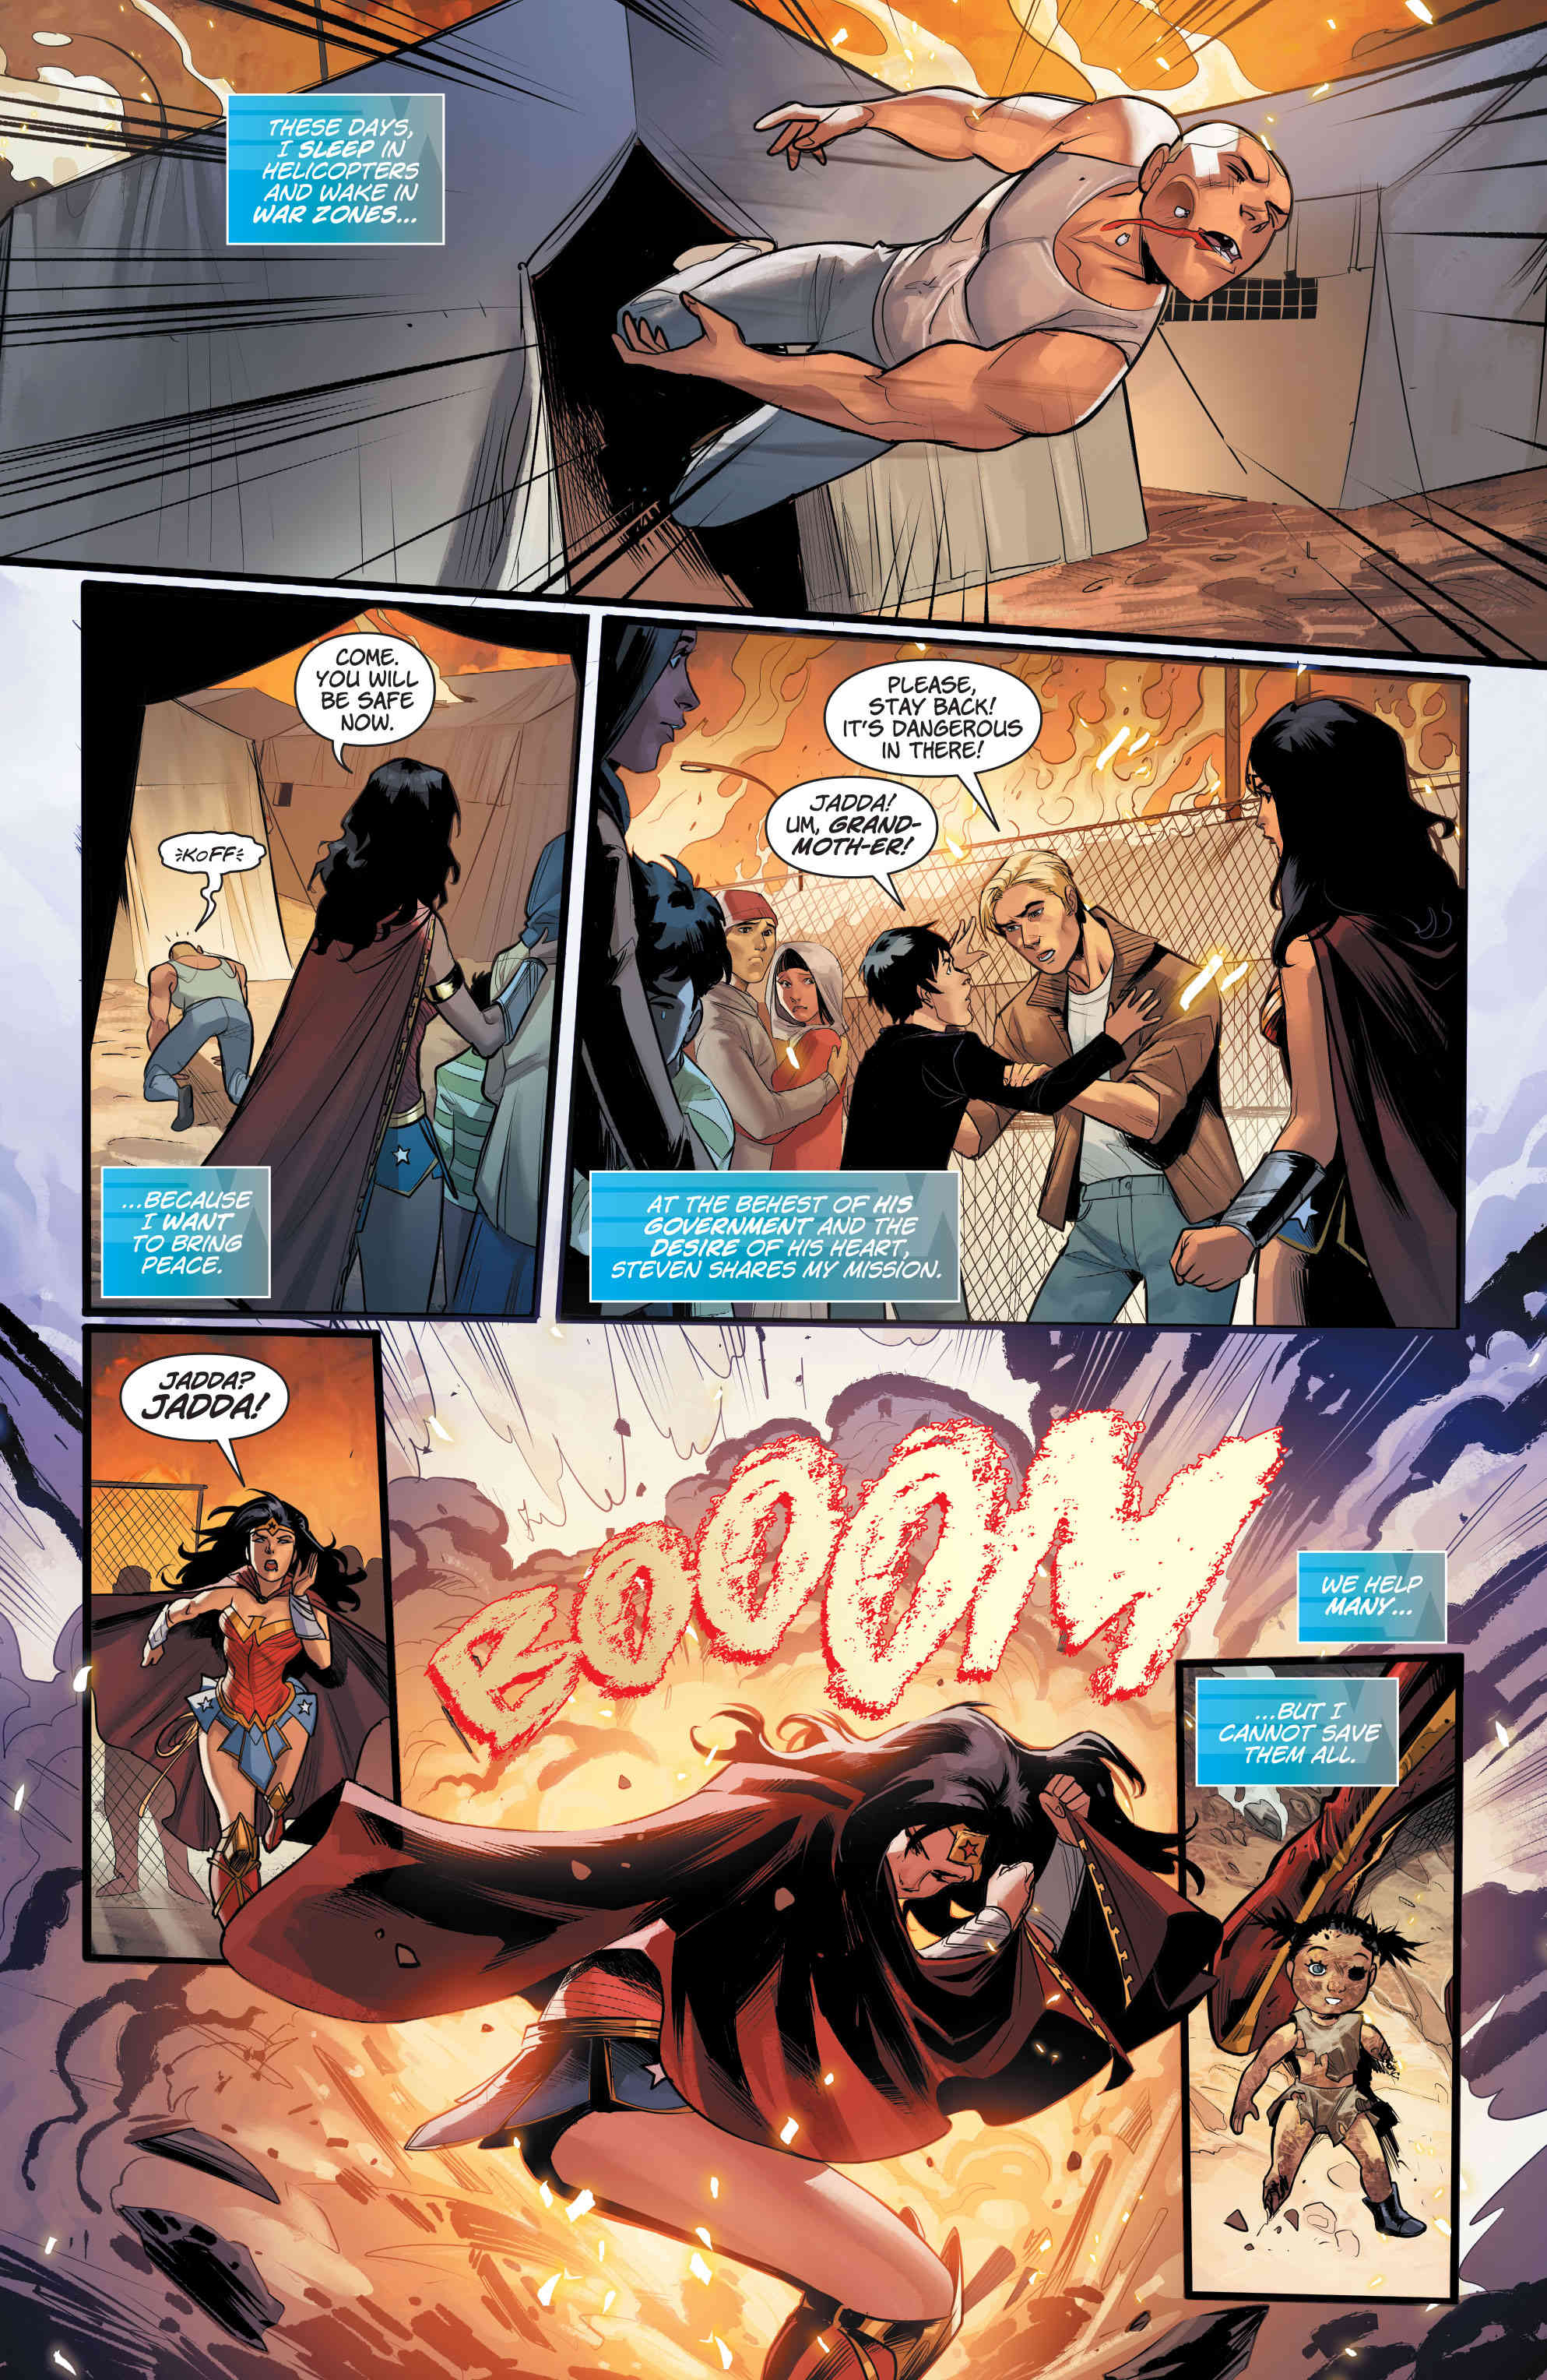 Wonder Woman #26 Review